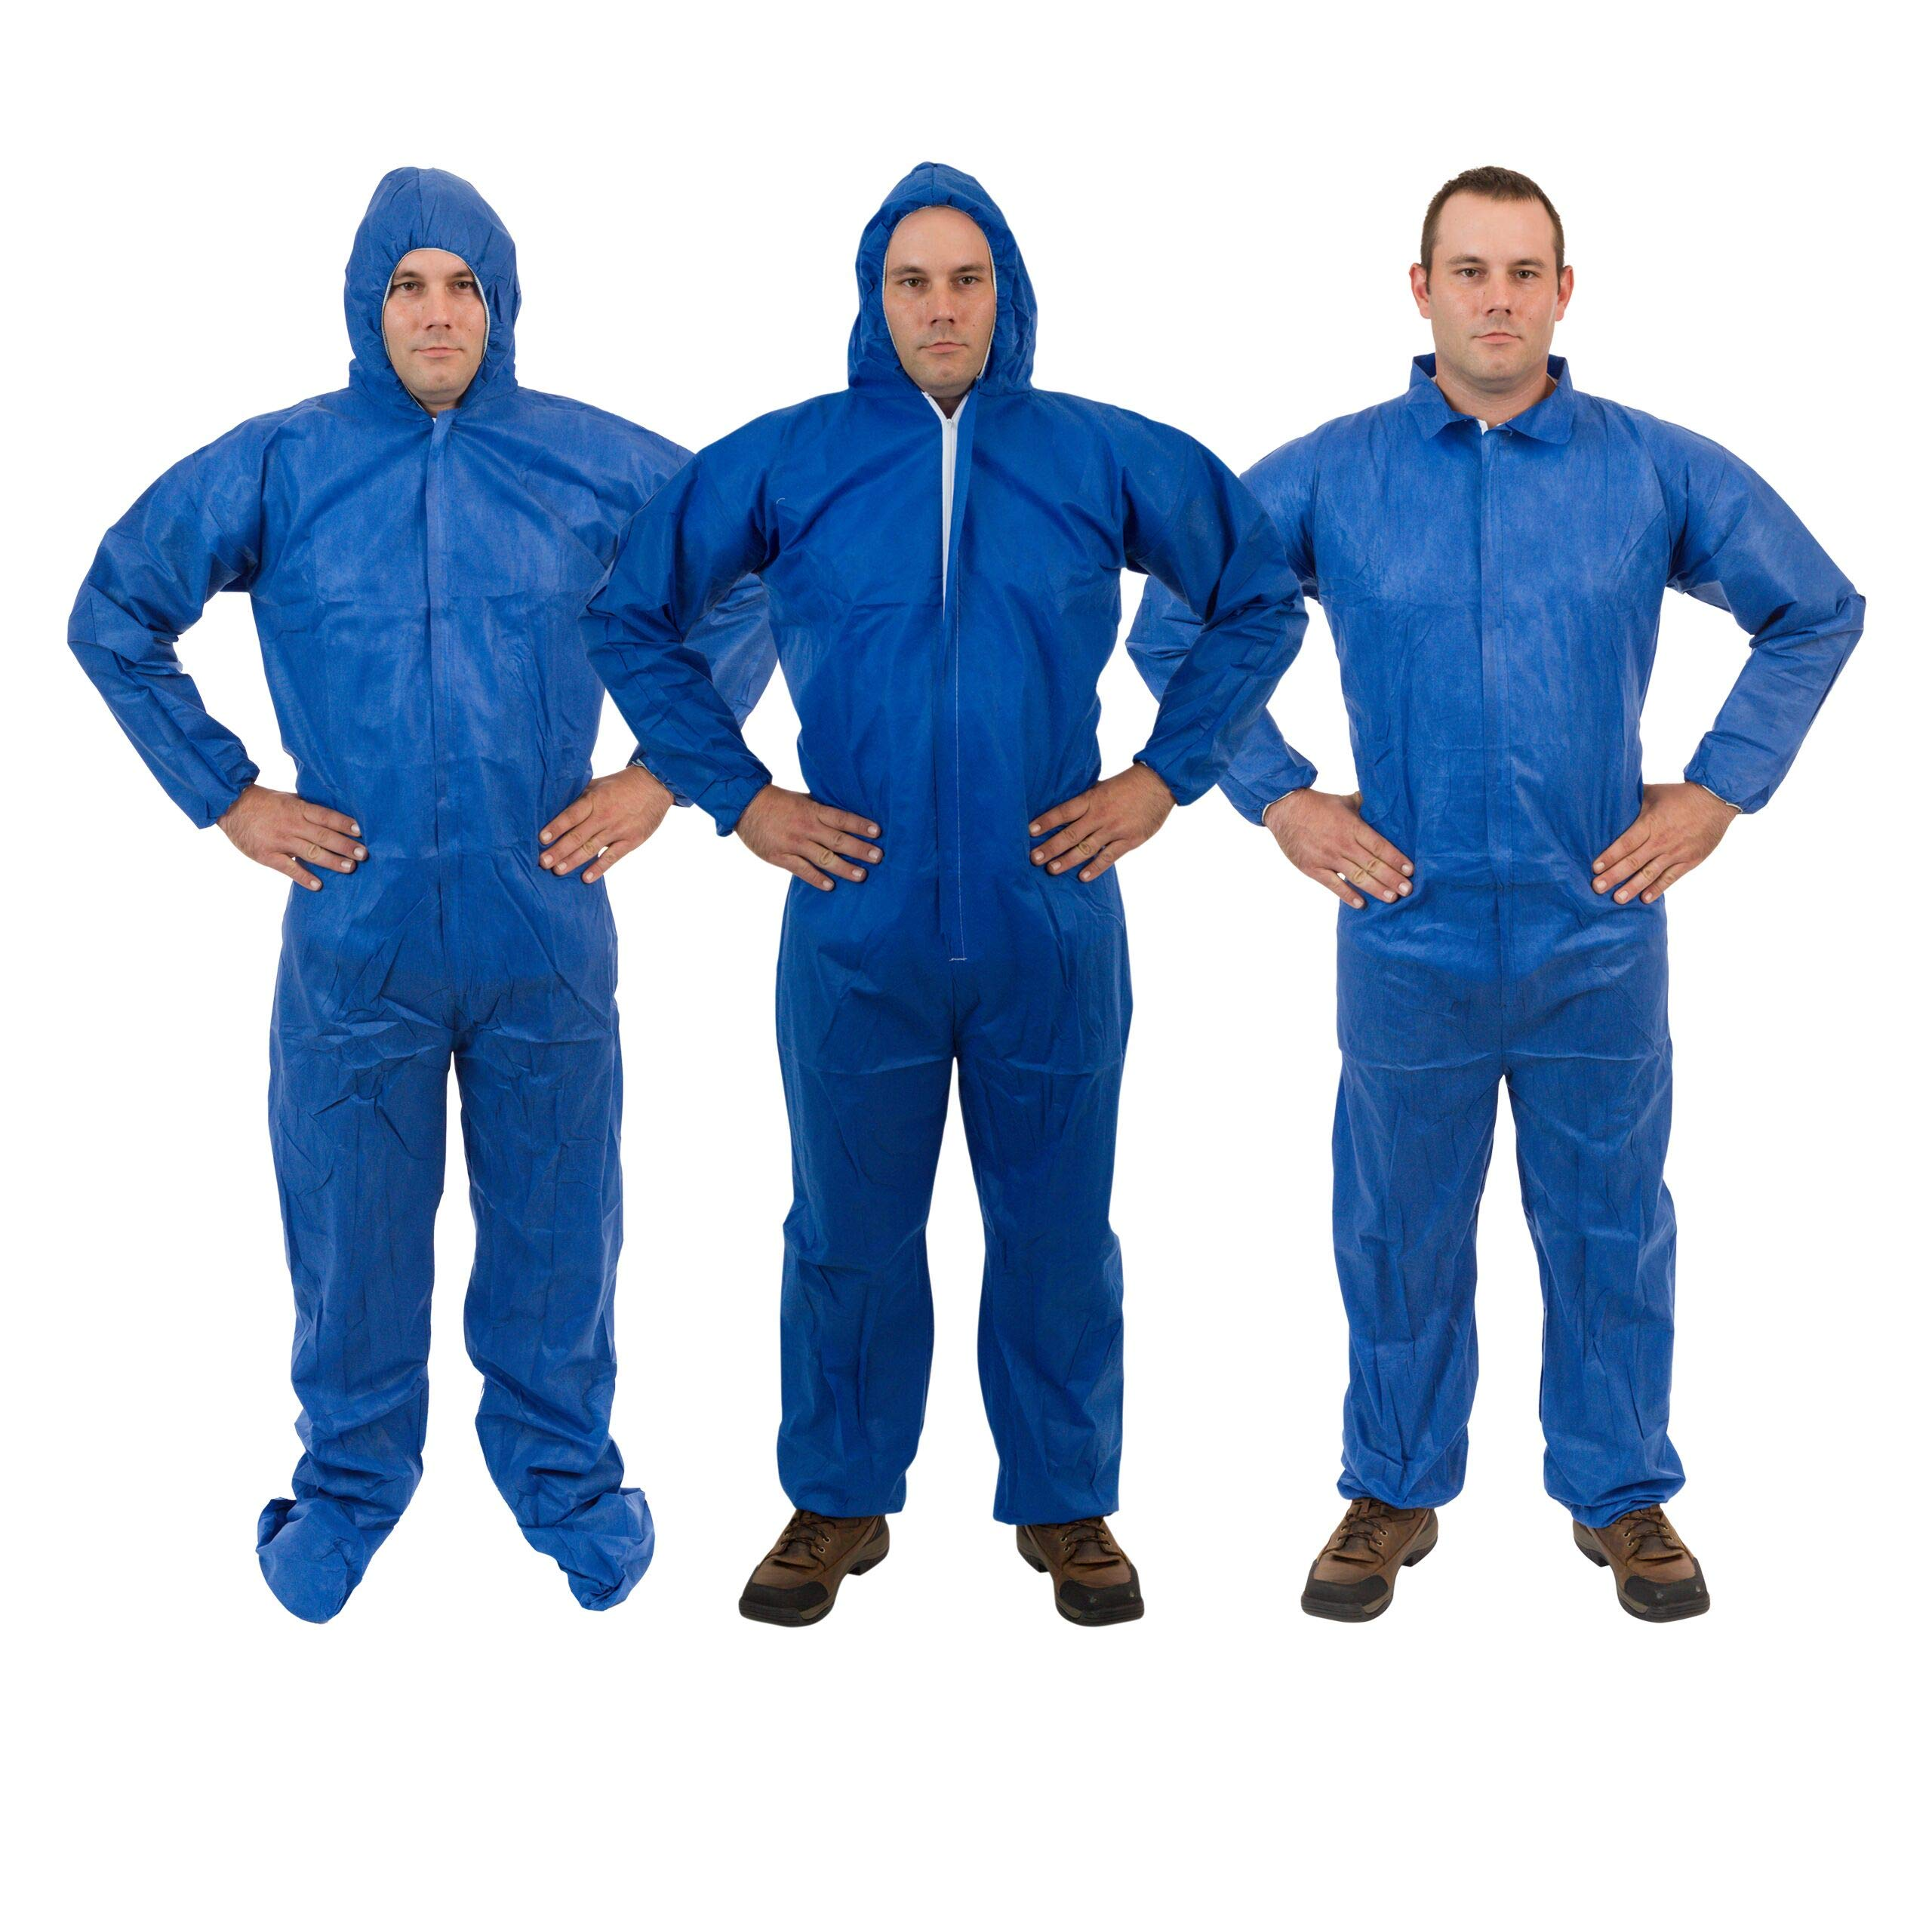 International Enviorugard – Lightweight 3 Layer SMS General Protective Coverall for General Cleanup (25 per case) (3XL, Blue) by International Enviroguard (Image #3)